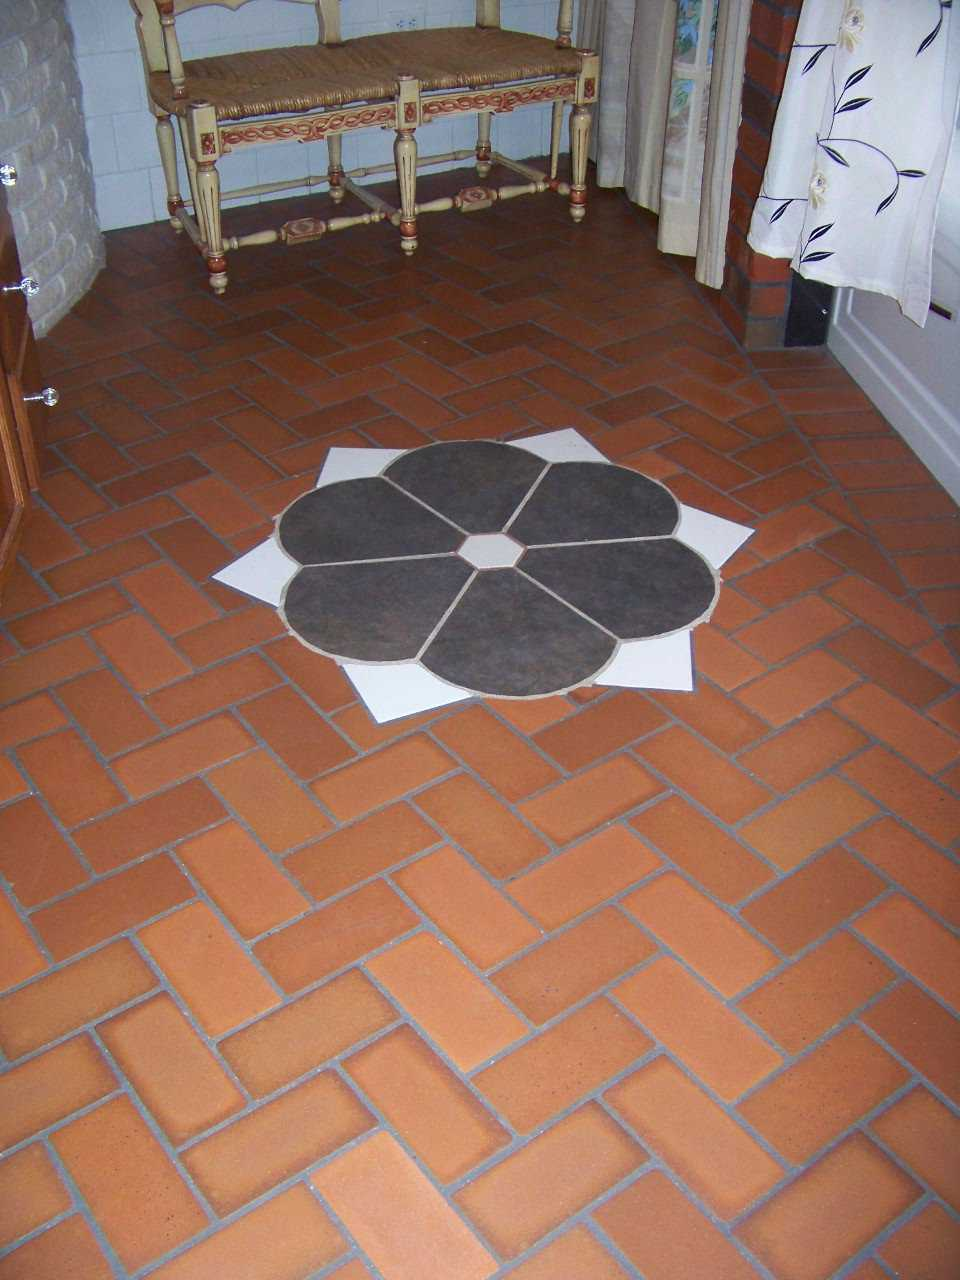 Unique! — Joel enhanced the brick floors with unusual, creative patterns.